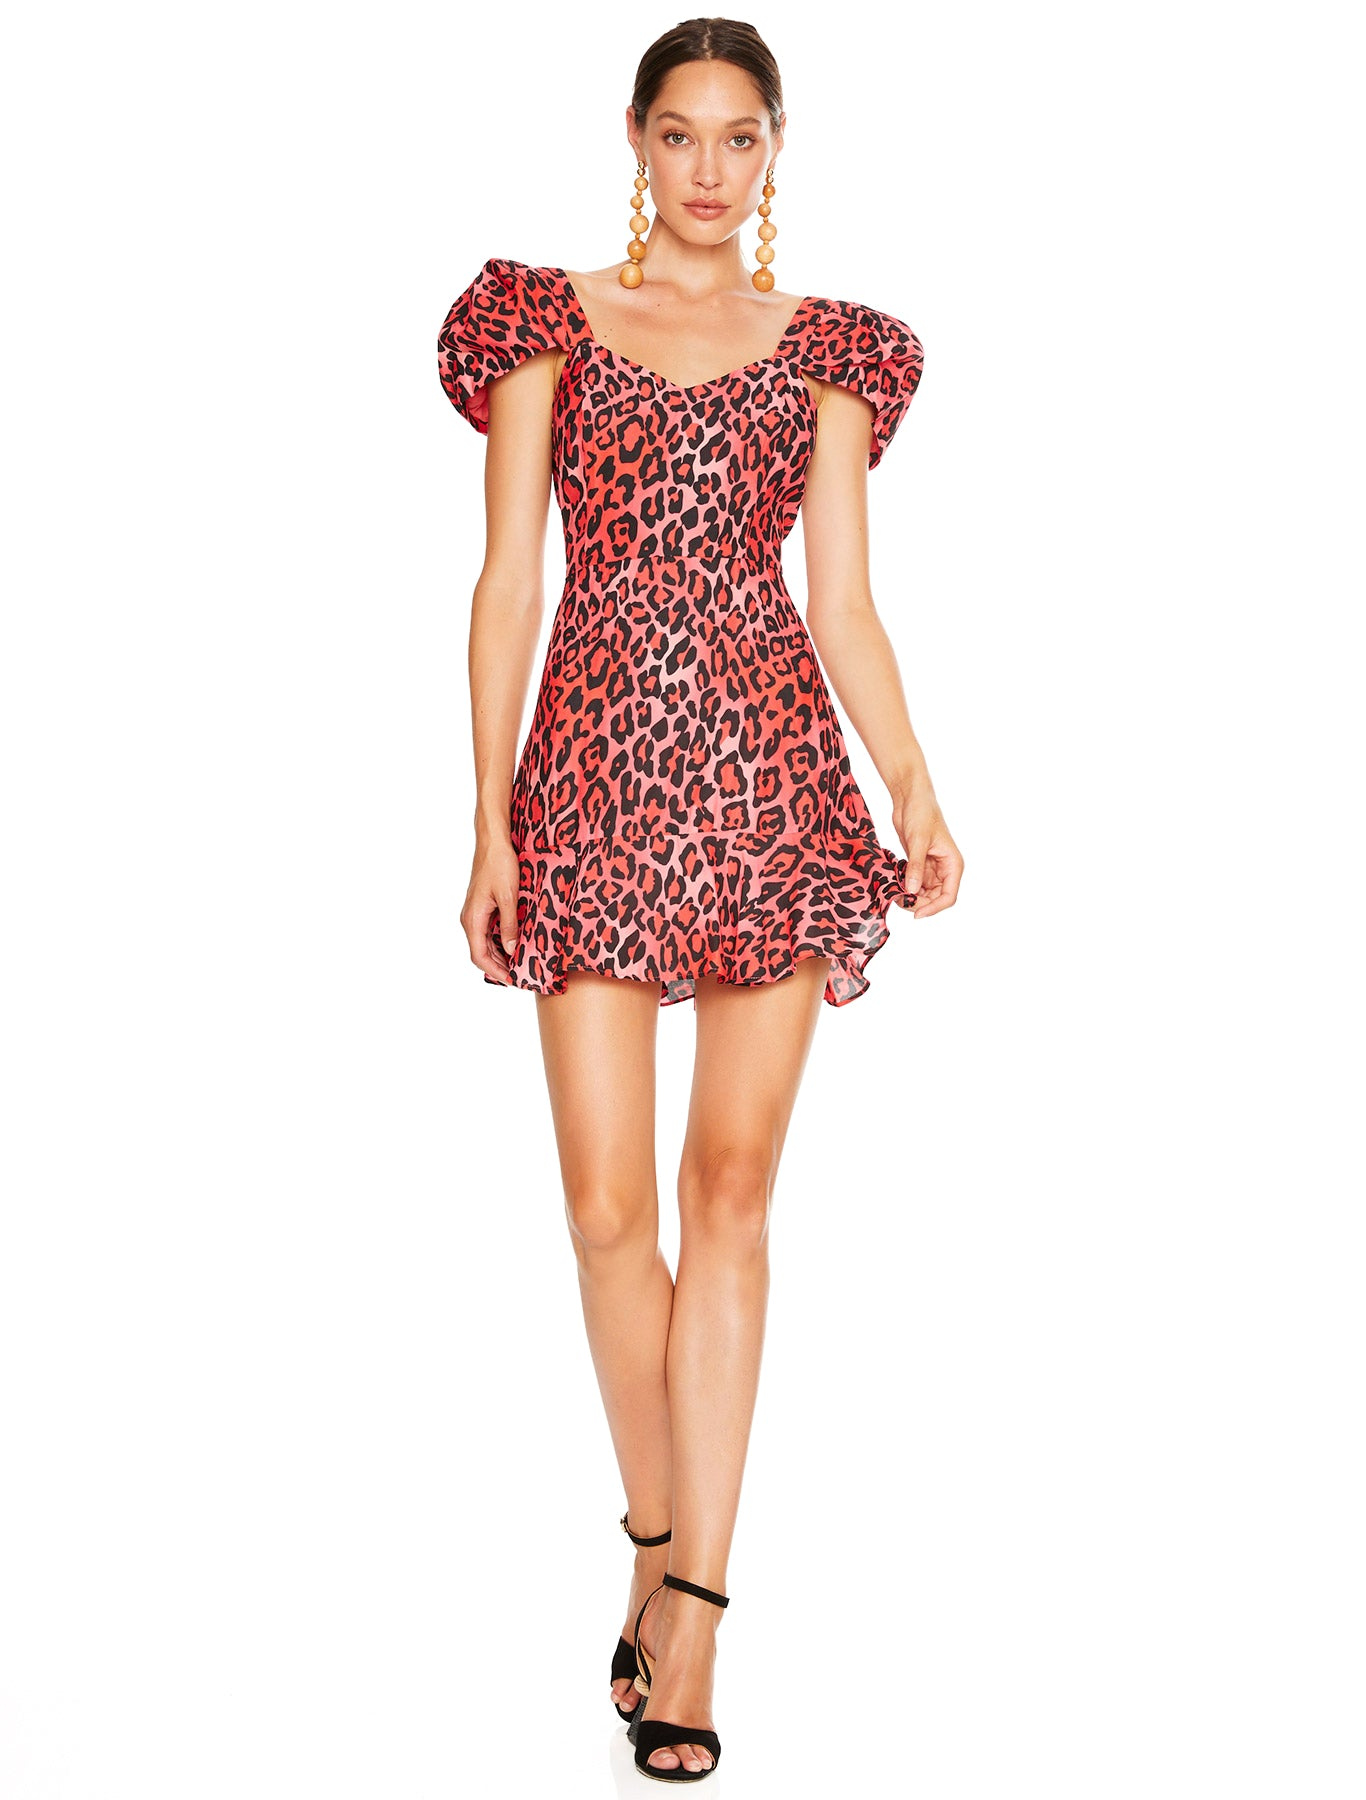 PARTY ANIMAL MINI DRESS